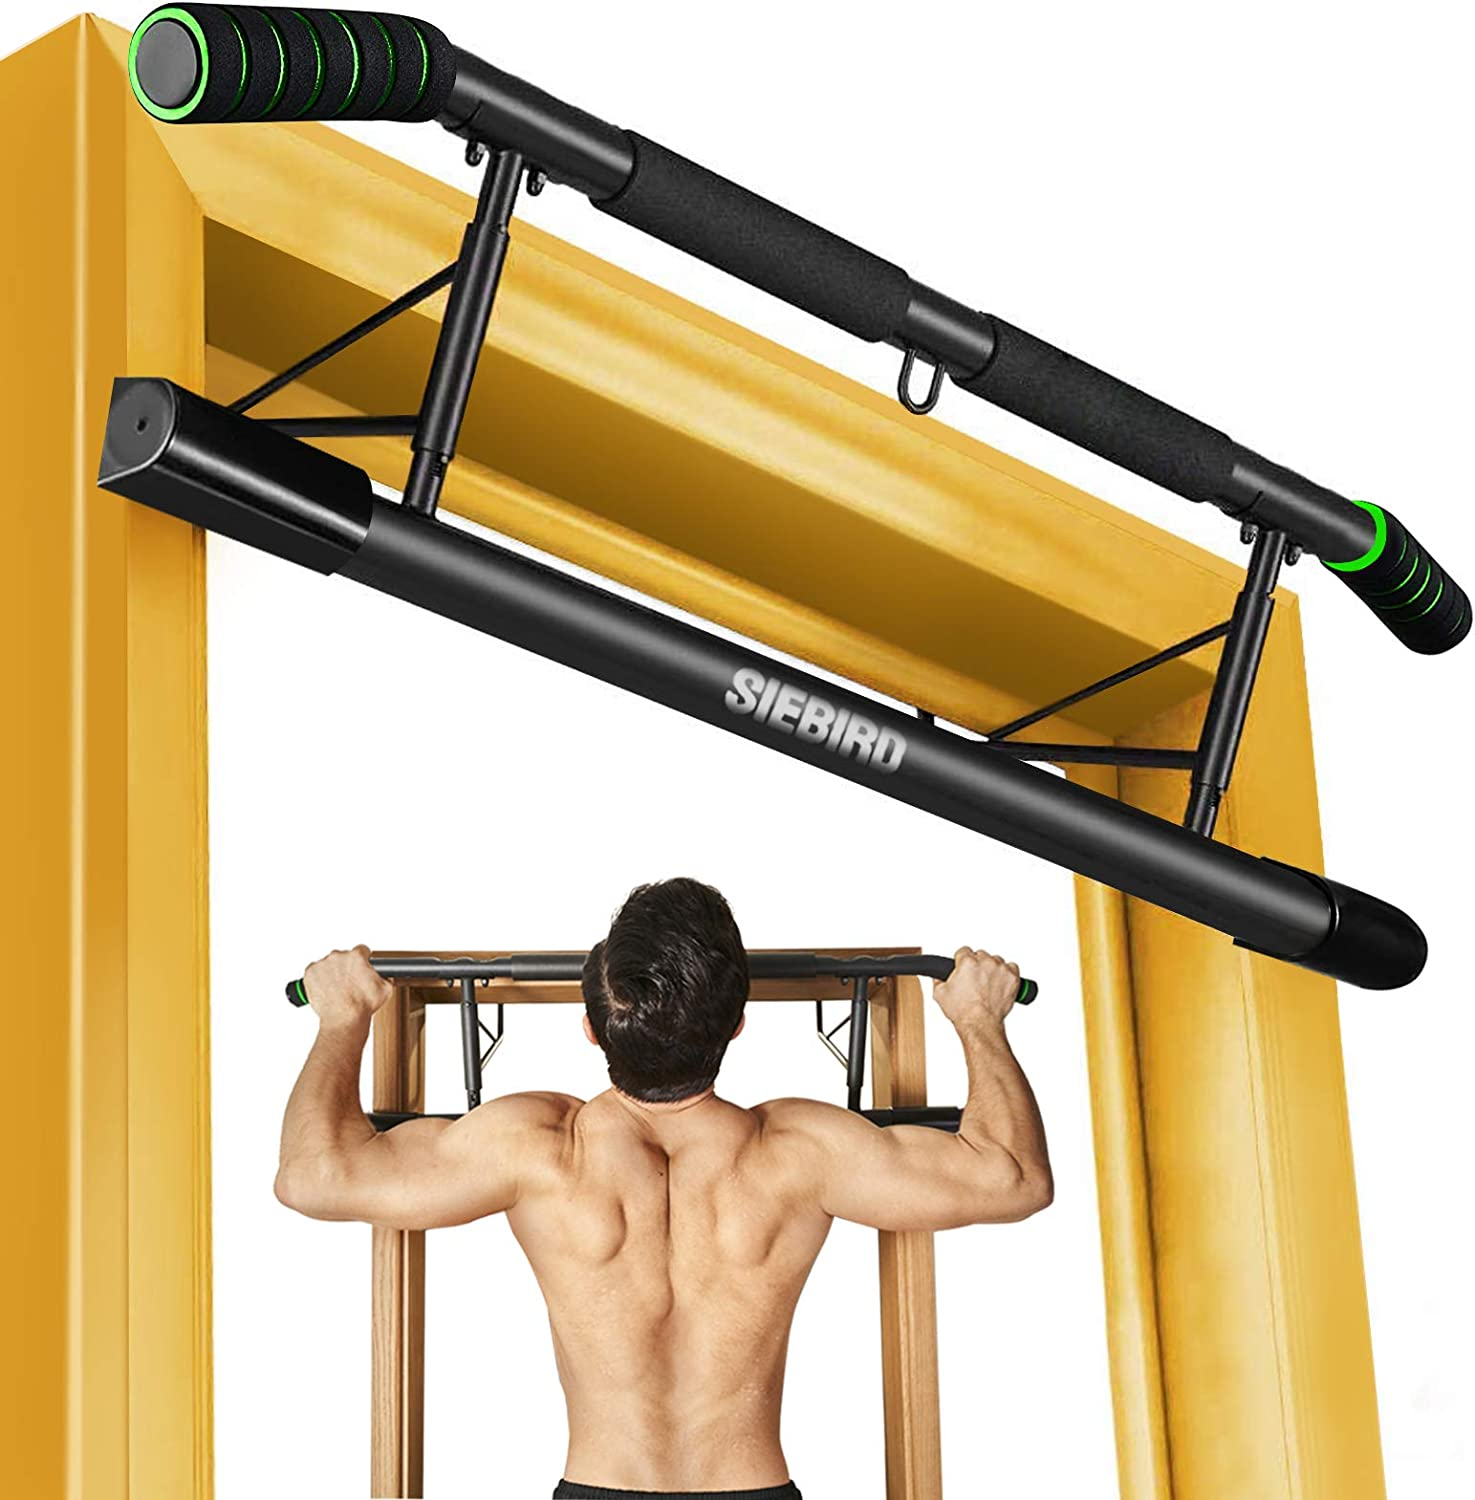 Portable Home Gym Equipment with Bonus 2 Professional Wrist Straps Multi-Gym Chin Up Bar with Smart Hook Technology SIEBIRD Pull Up Bar for Doorway No Screw